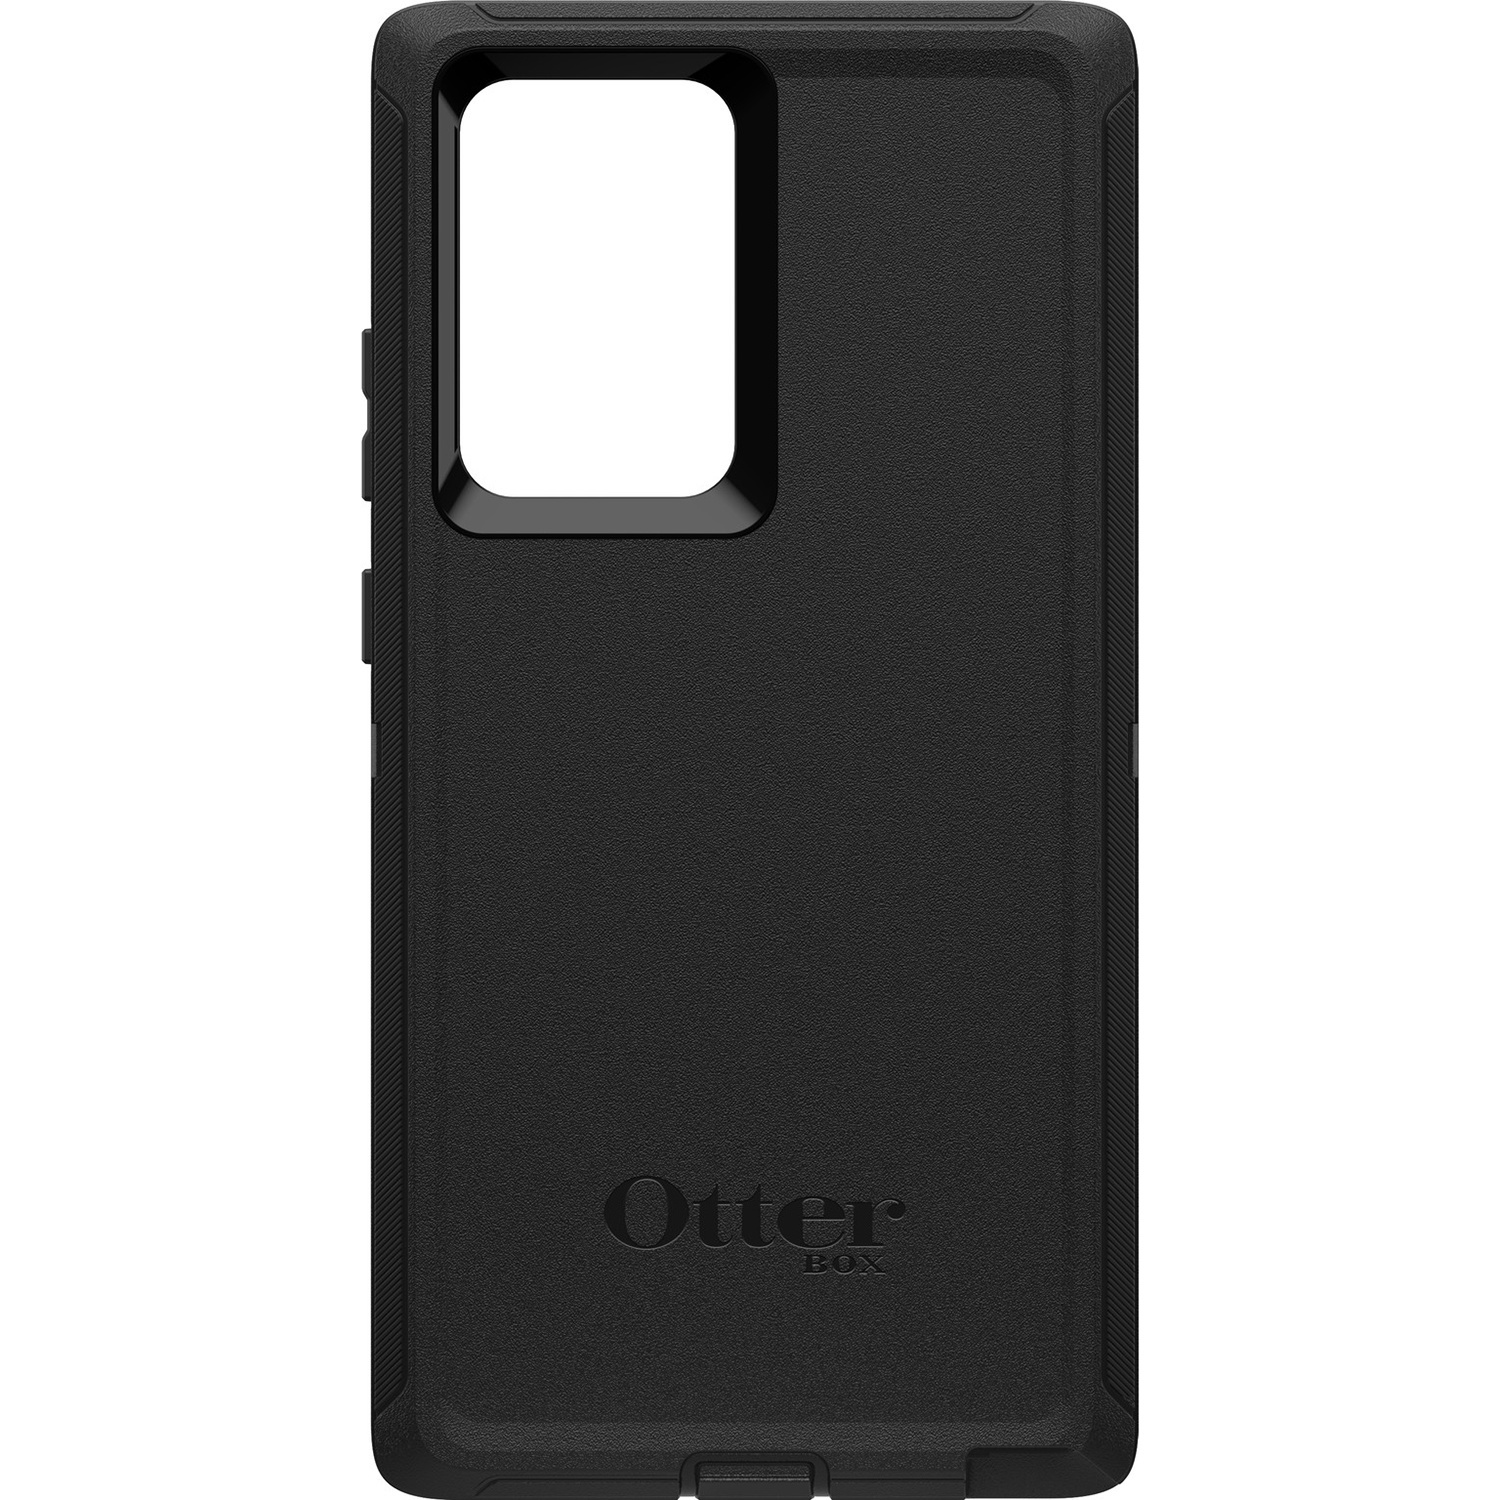 OtterBox Defender Rugged Backcover Galaxy Note 20 Ultra - Zwart